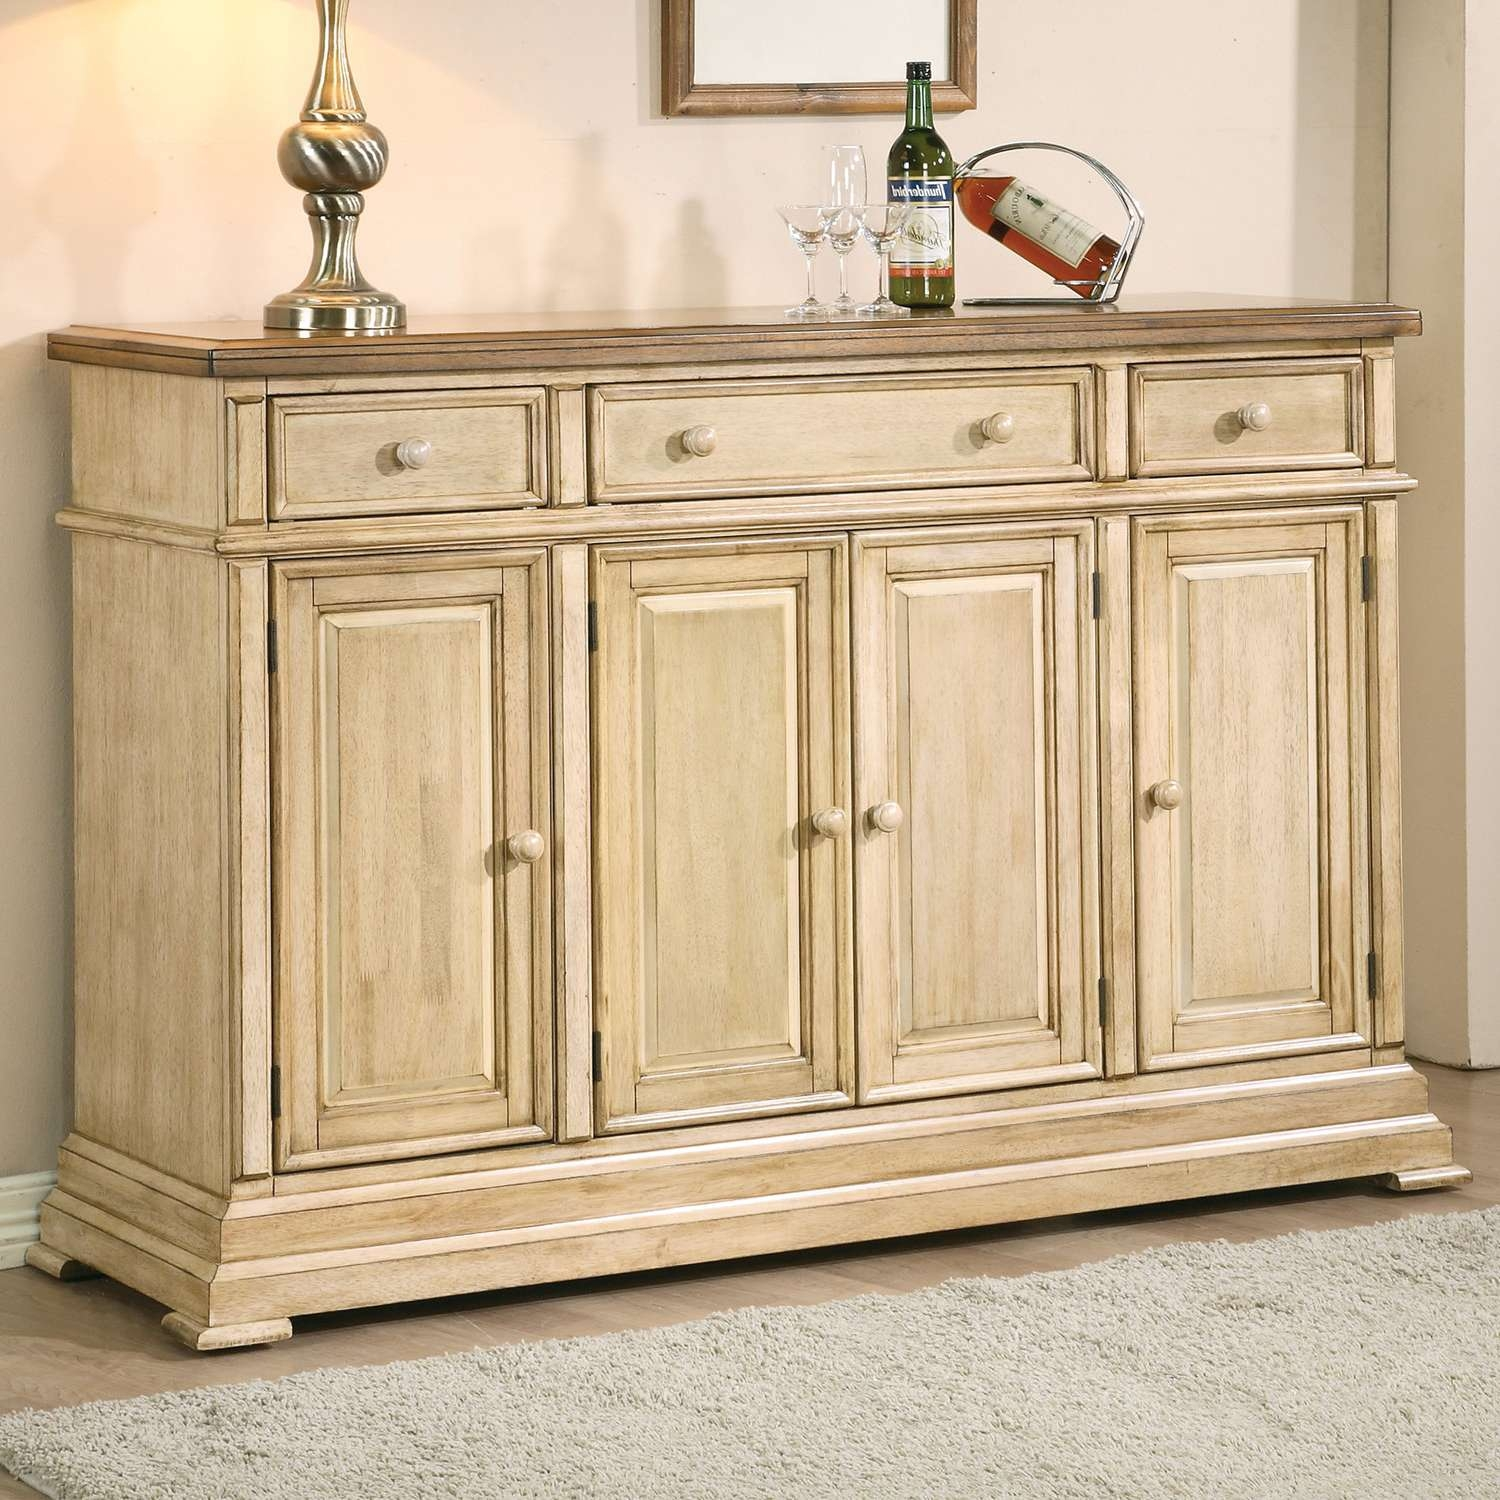 Best Of White Buffet Sideboard – Bjdgjy With Buffet Sideboards (Gallery 4 of 20)